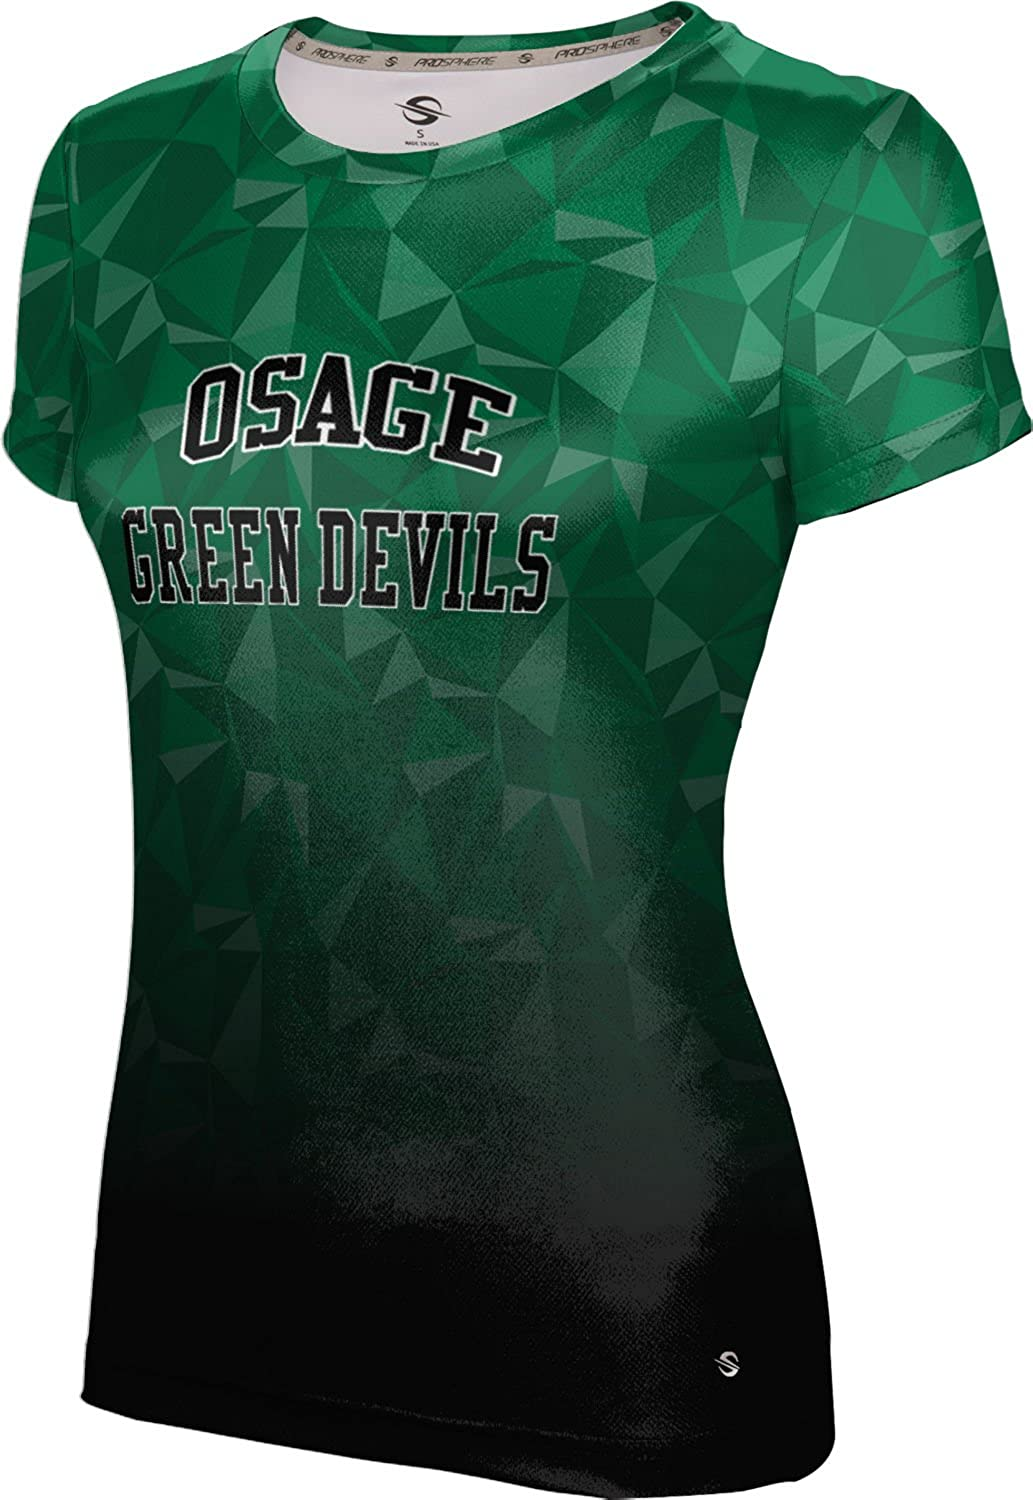 ProSphere Women's Osage High School Maya Tech Tee